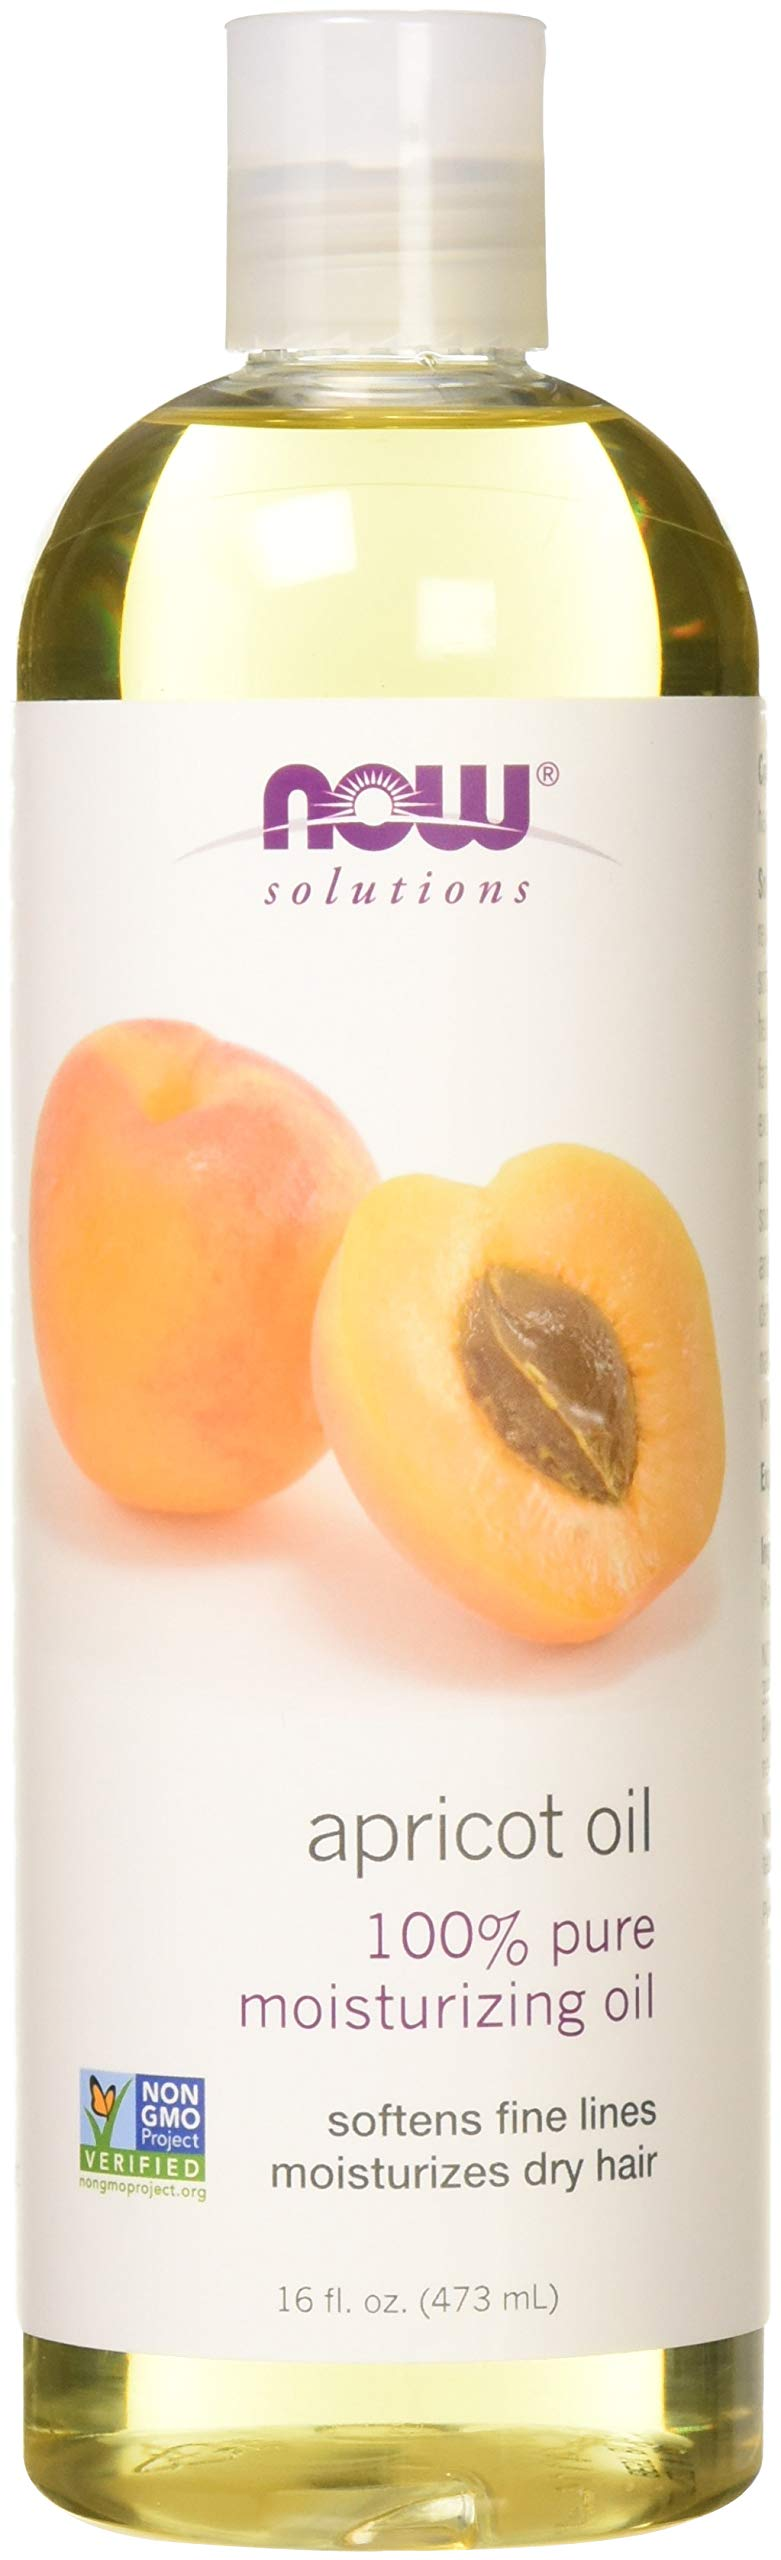 Now Solutions Apricot Oil 16 oz. (Pack of 2)